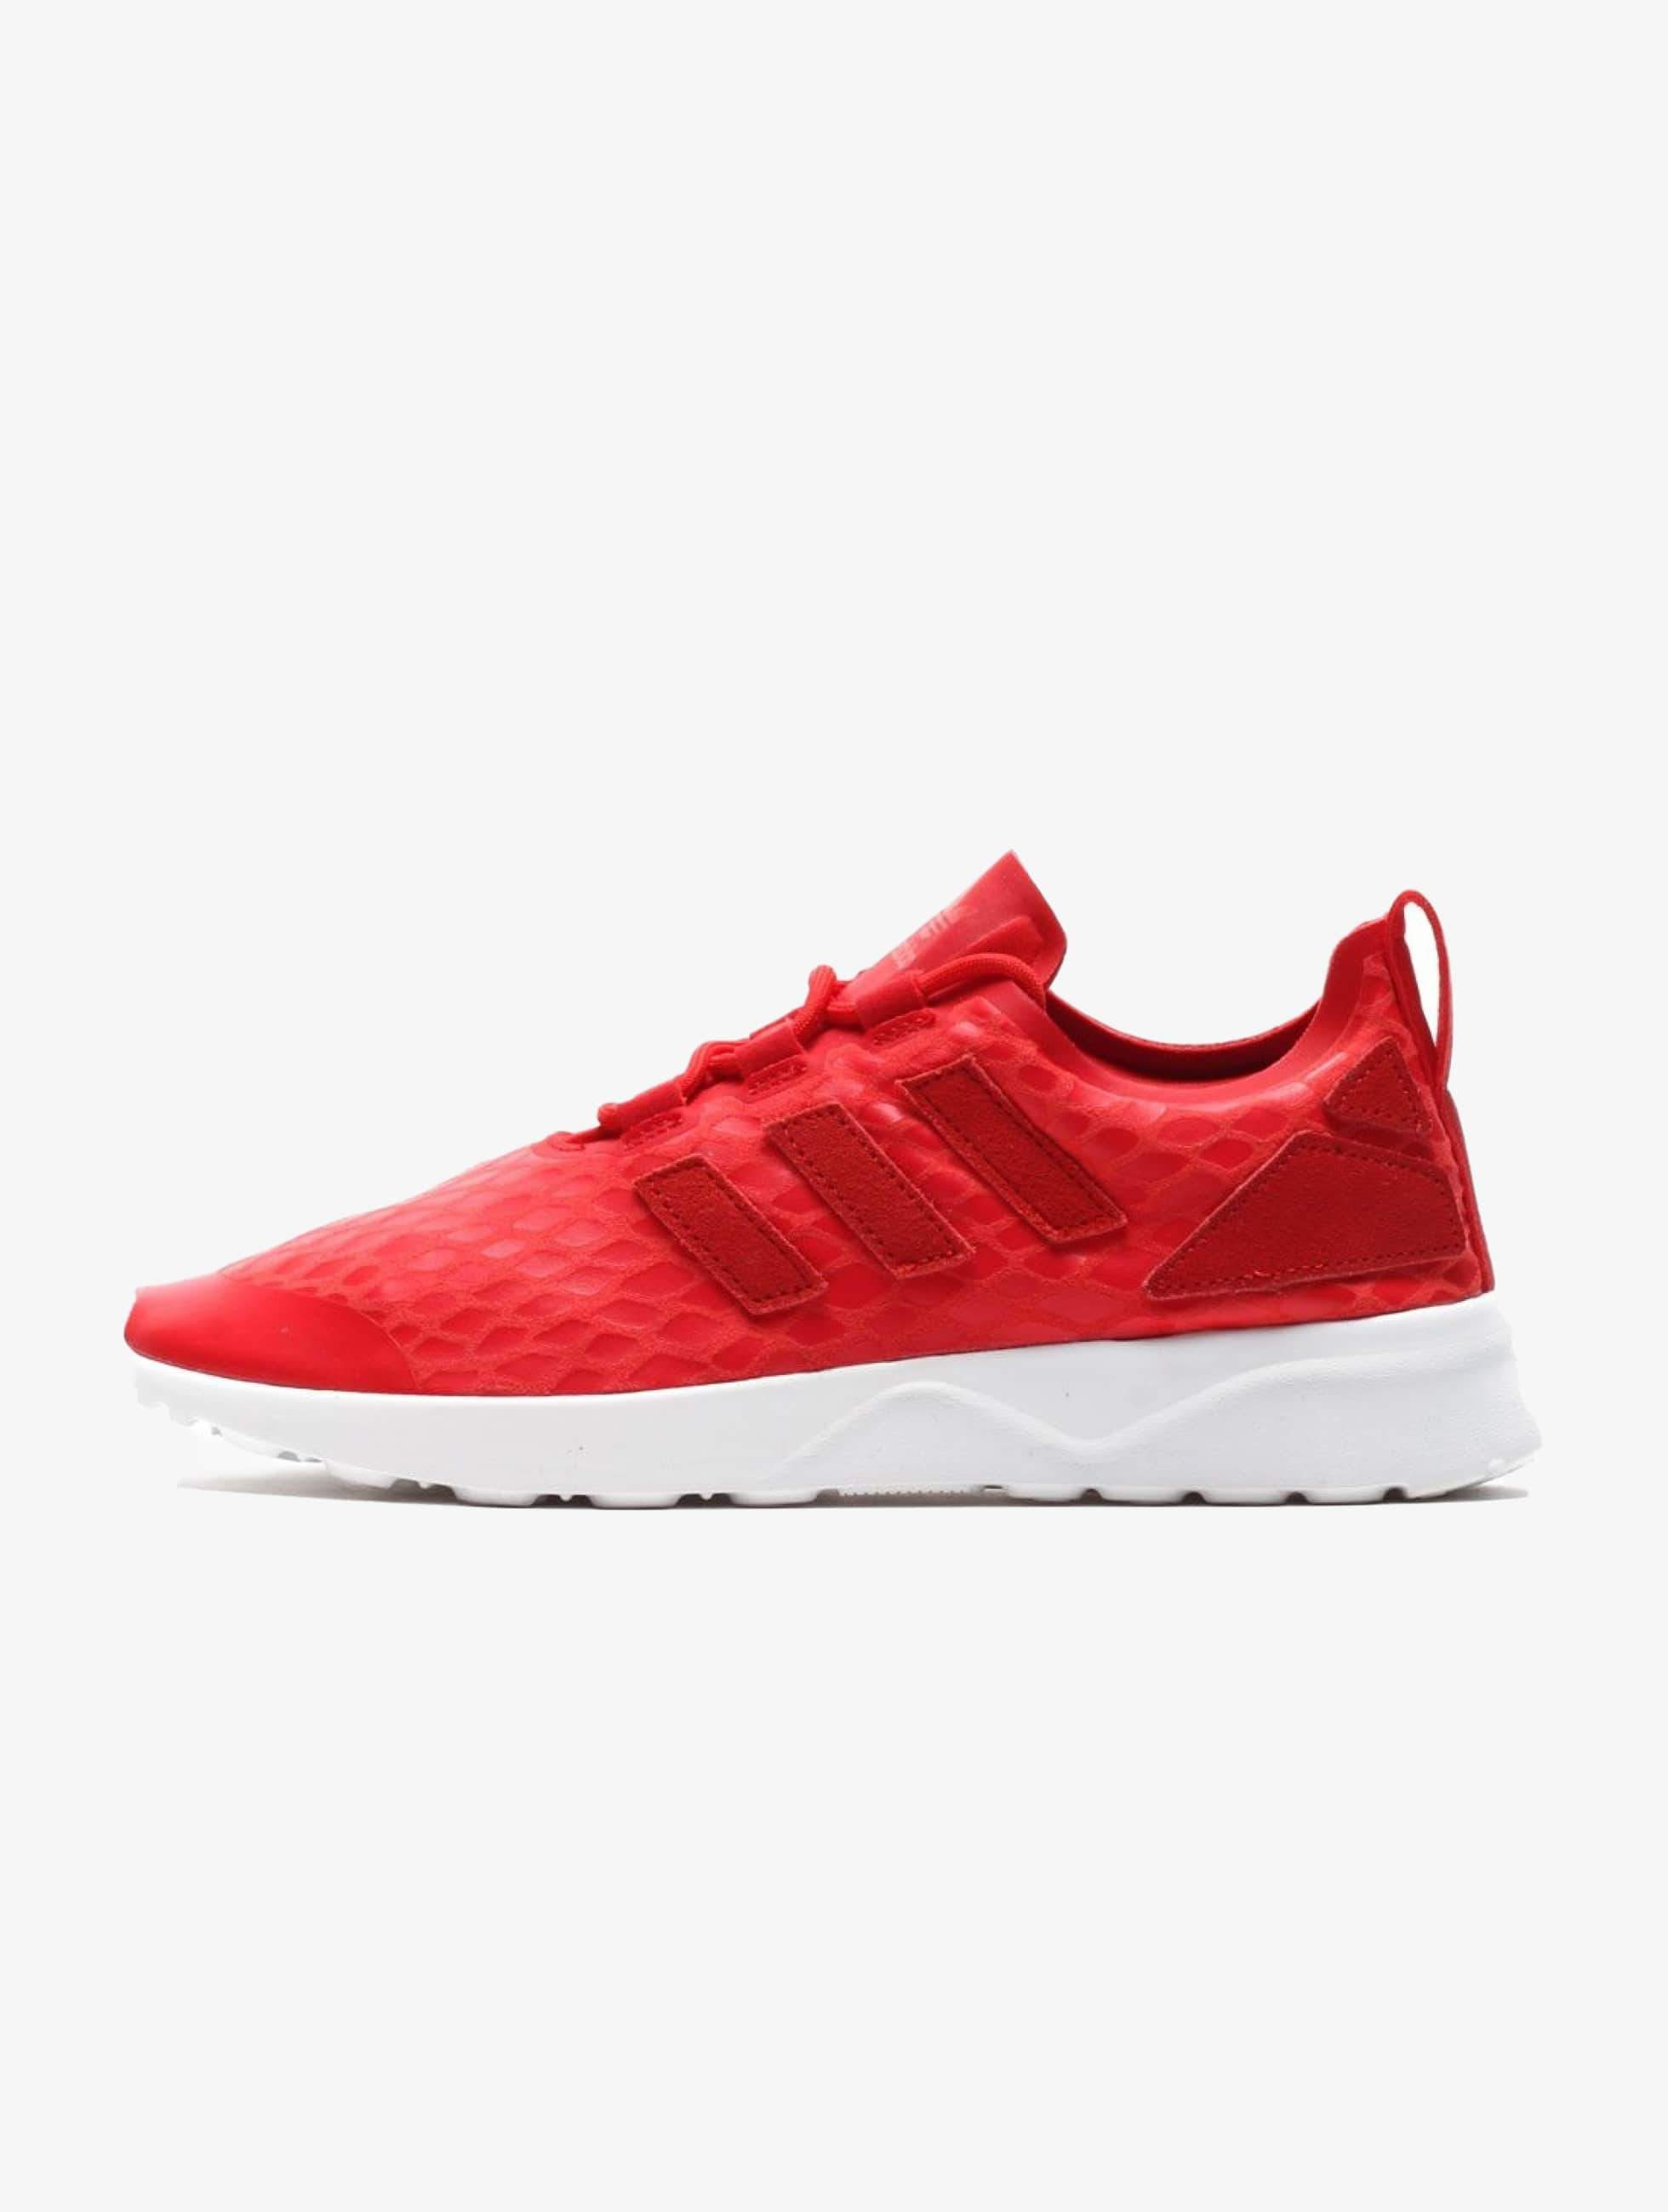 Adidas Zx Flux Verve W Sneakers Red